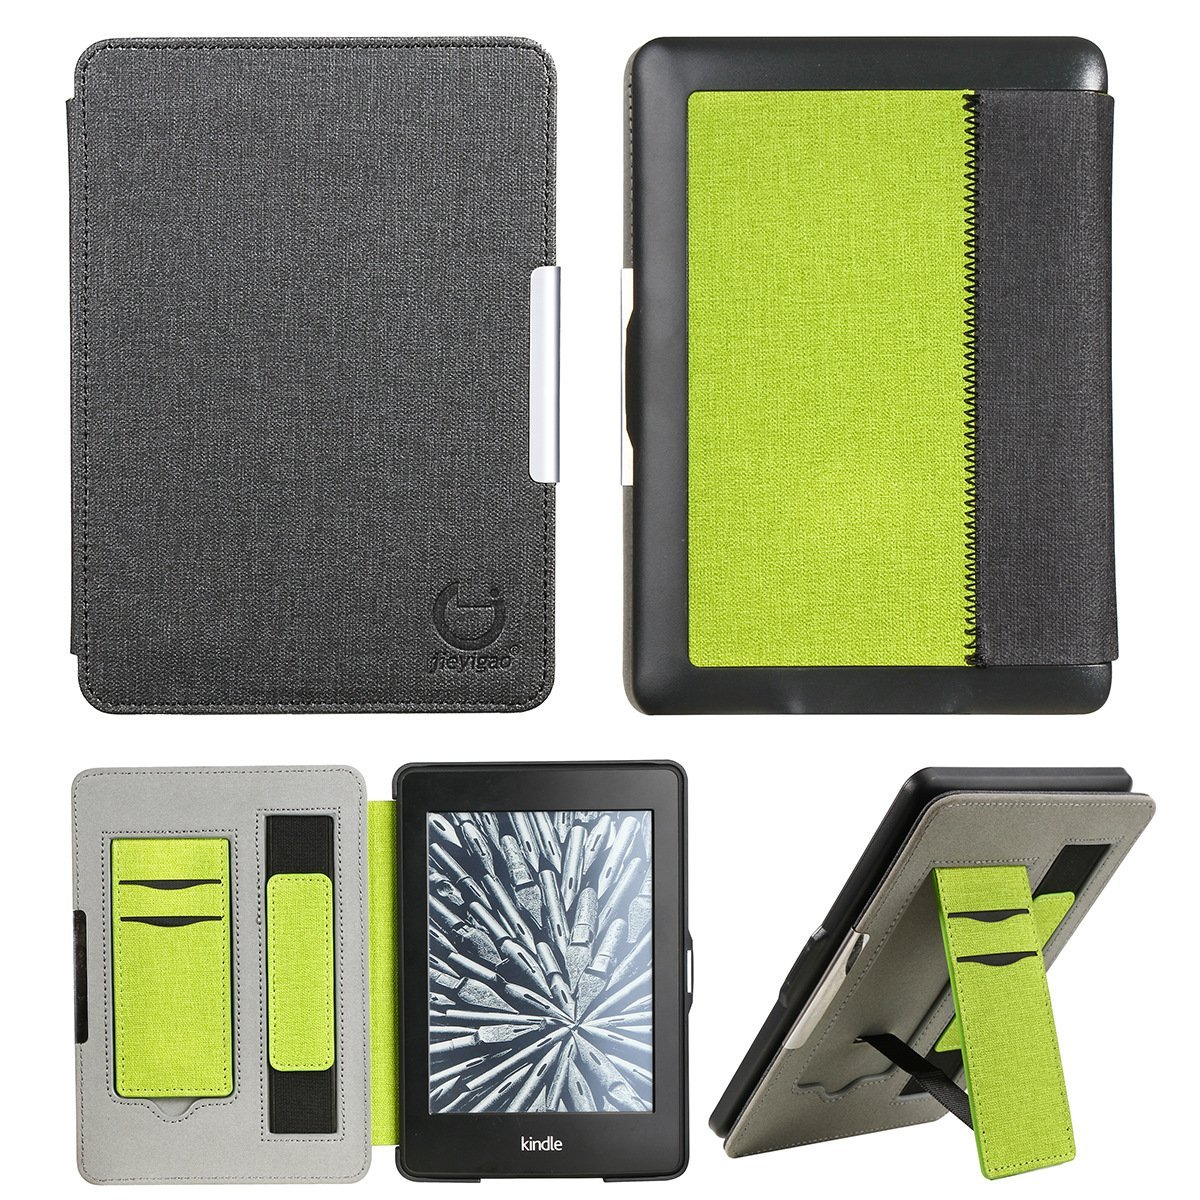 For Amazon Kindle Paperwhite Case Cover, DMaos PU Leather Smart Cover Hand Holding Belt Design Stand Magnetic Closure Auto Wake/Sleep Function - Black & Green